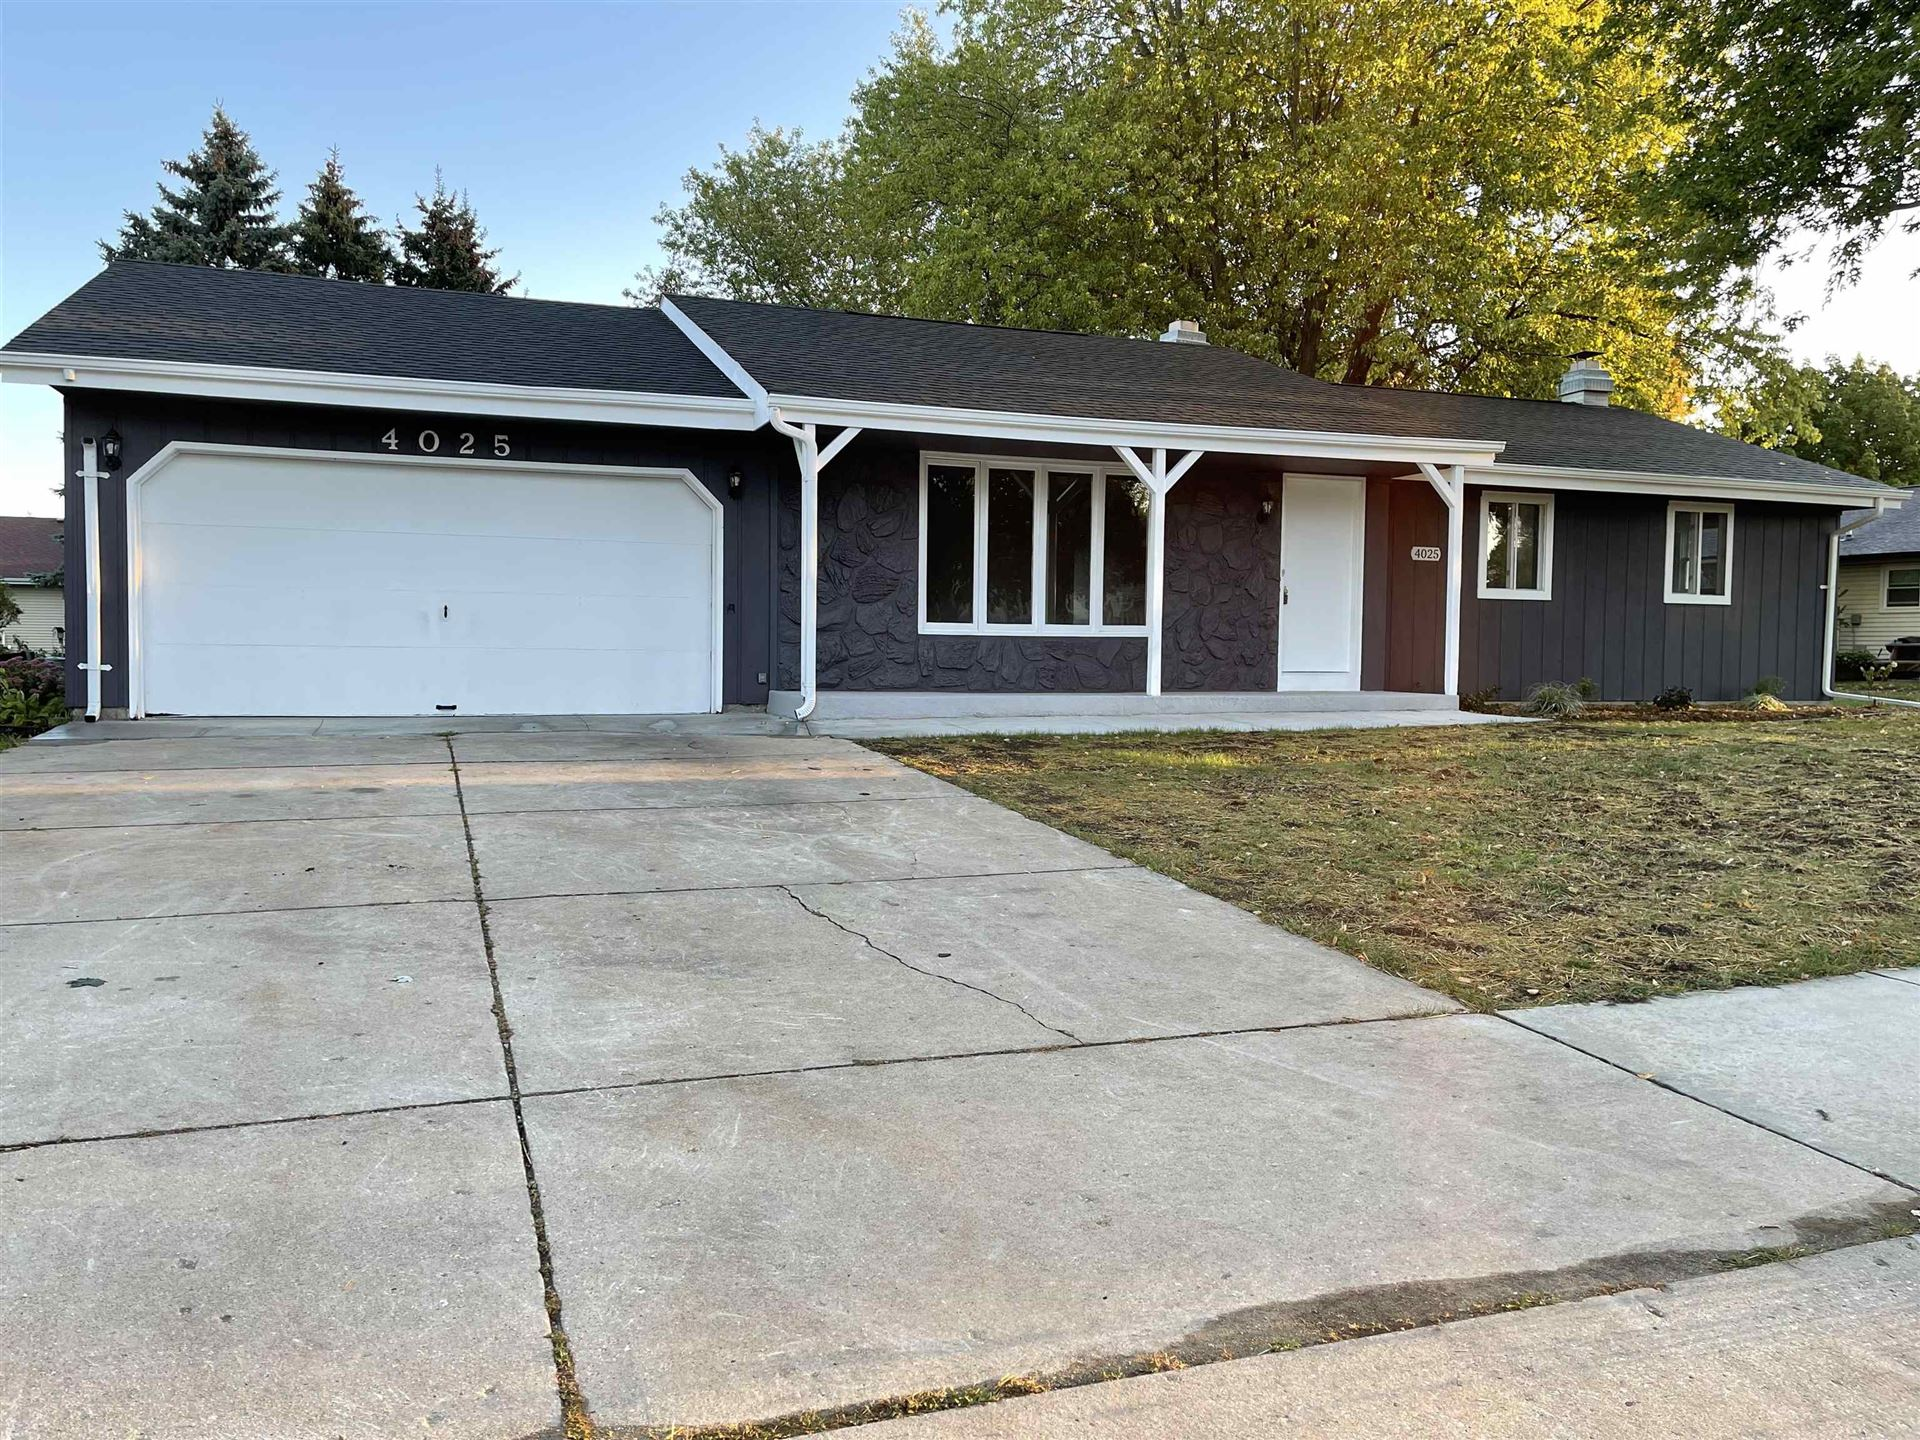 4025 Skyview Dr, Janesville, WI 53546 - #: 1920603